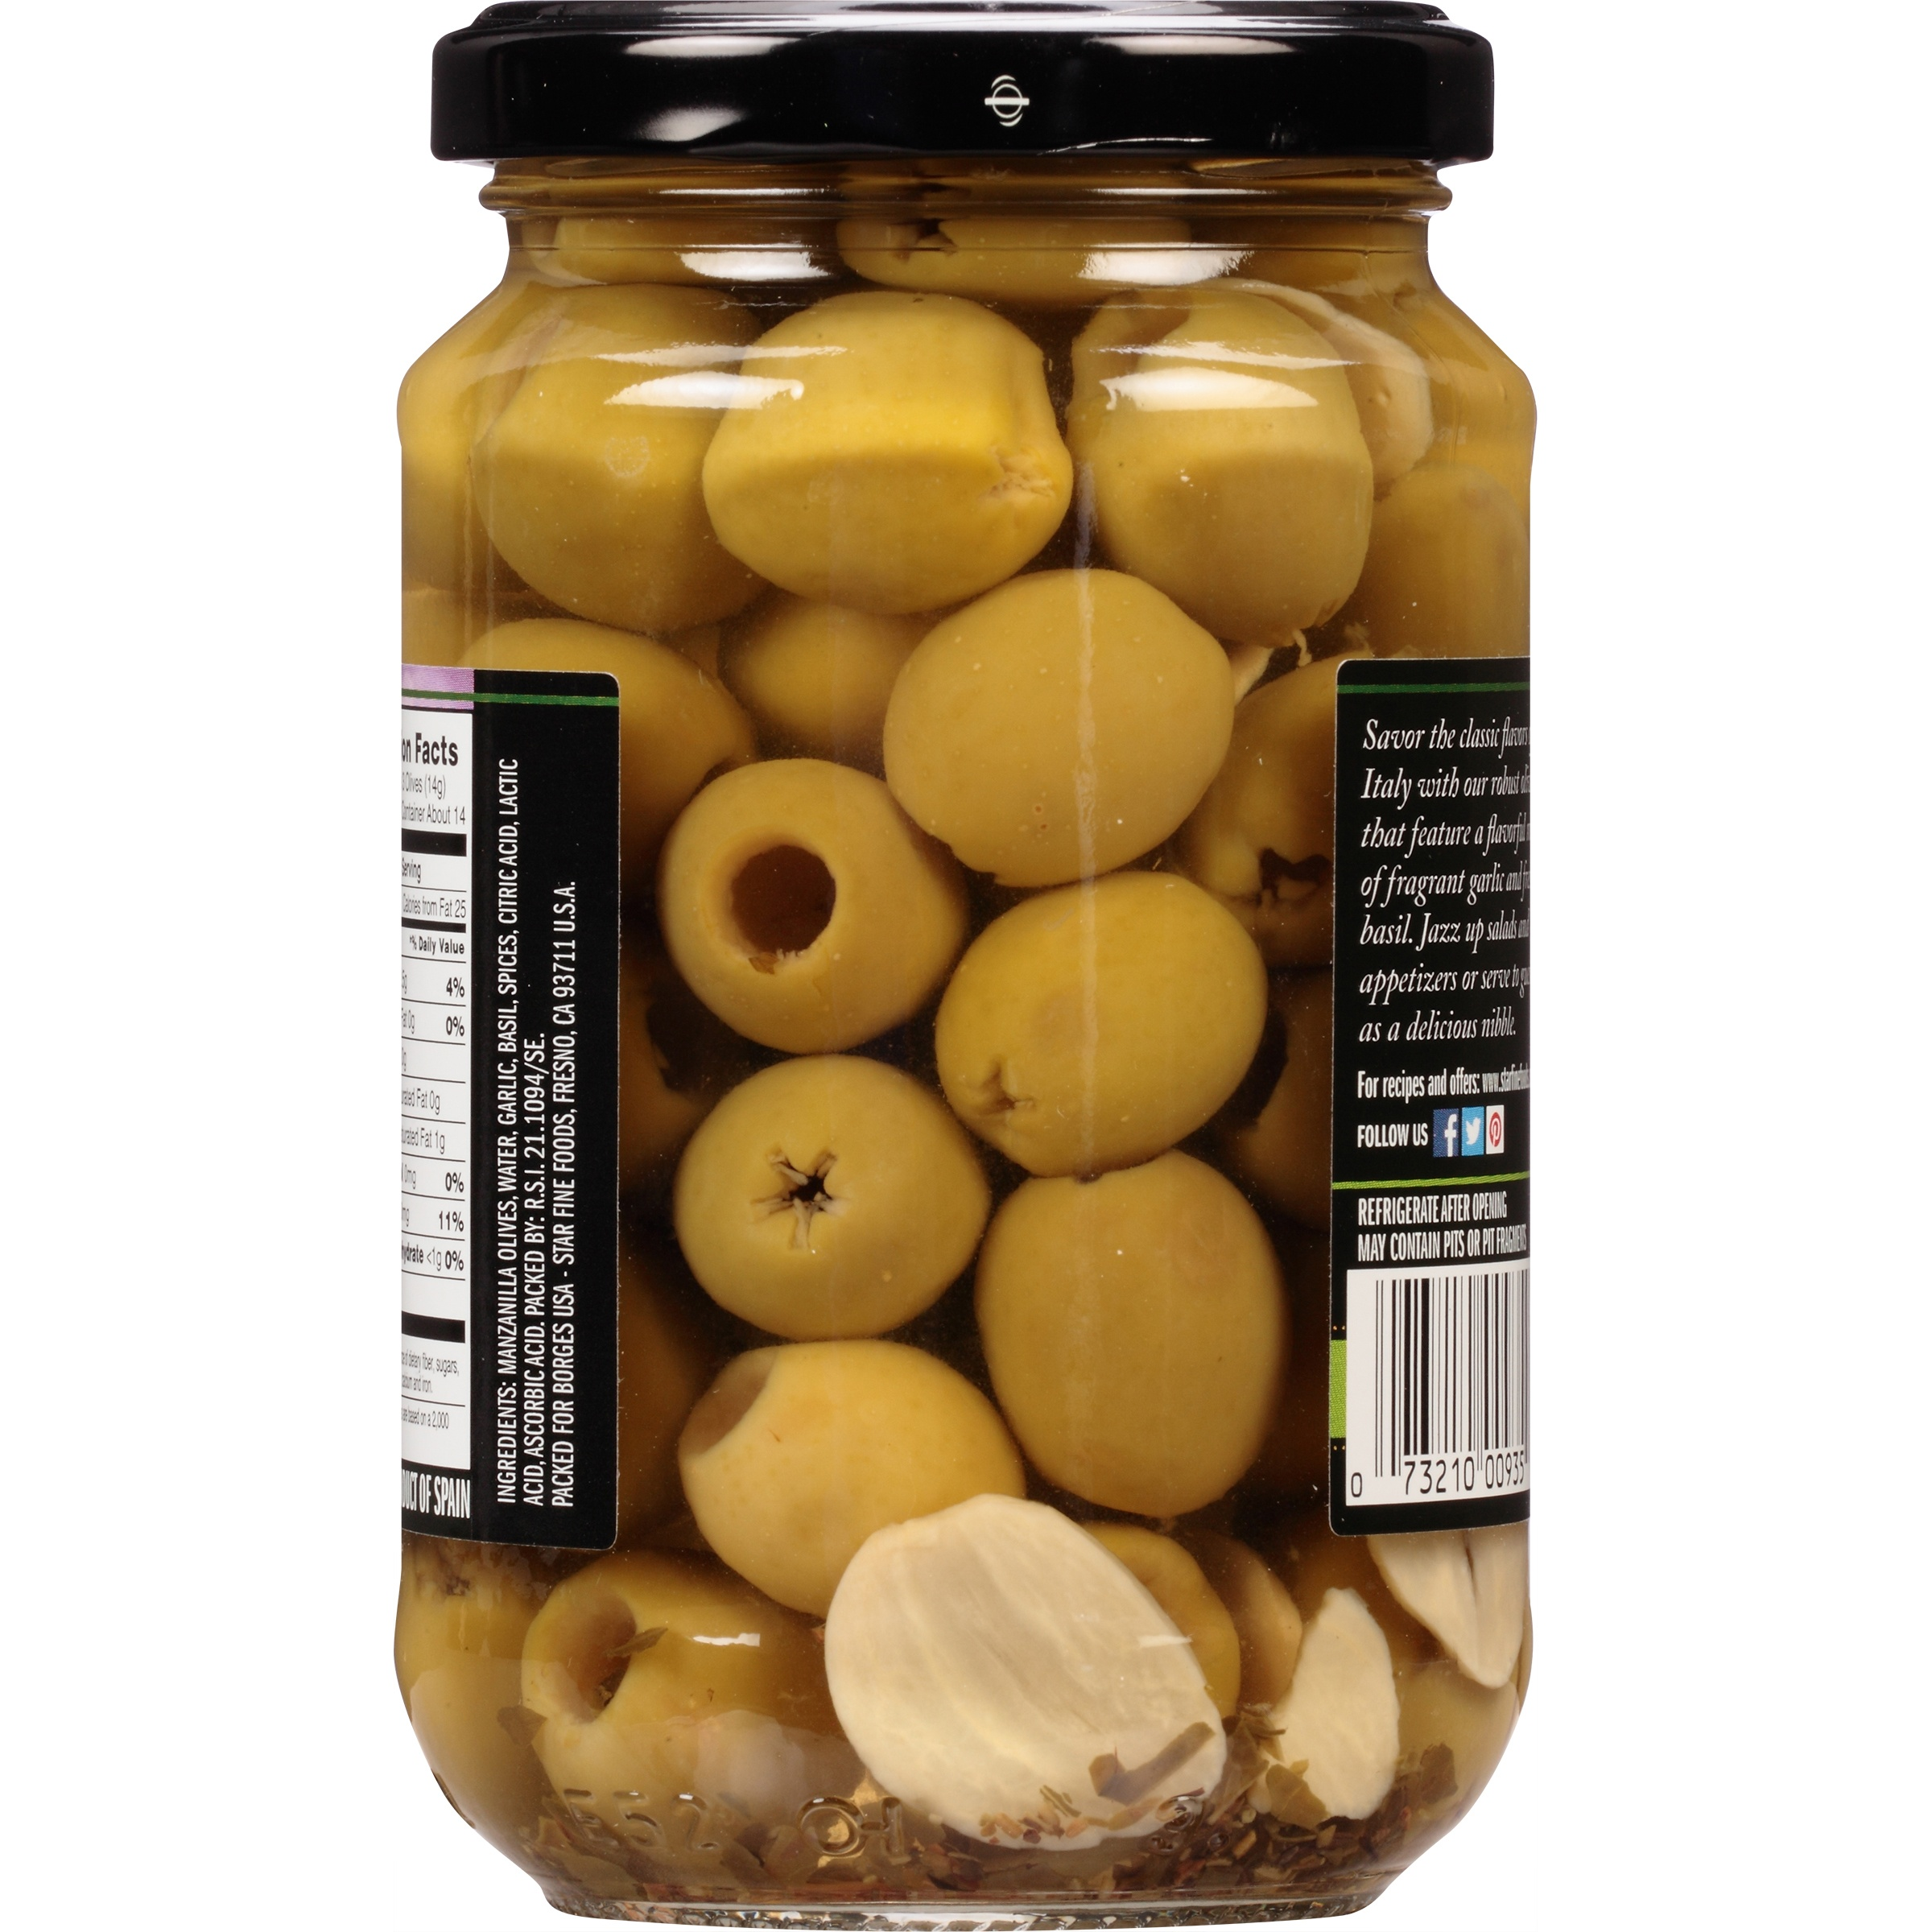 Star® Garlic & Basil Marinated Olives 5.75 oz. Bottle - Walmart.com